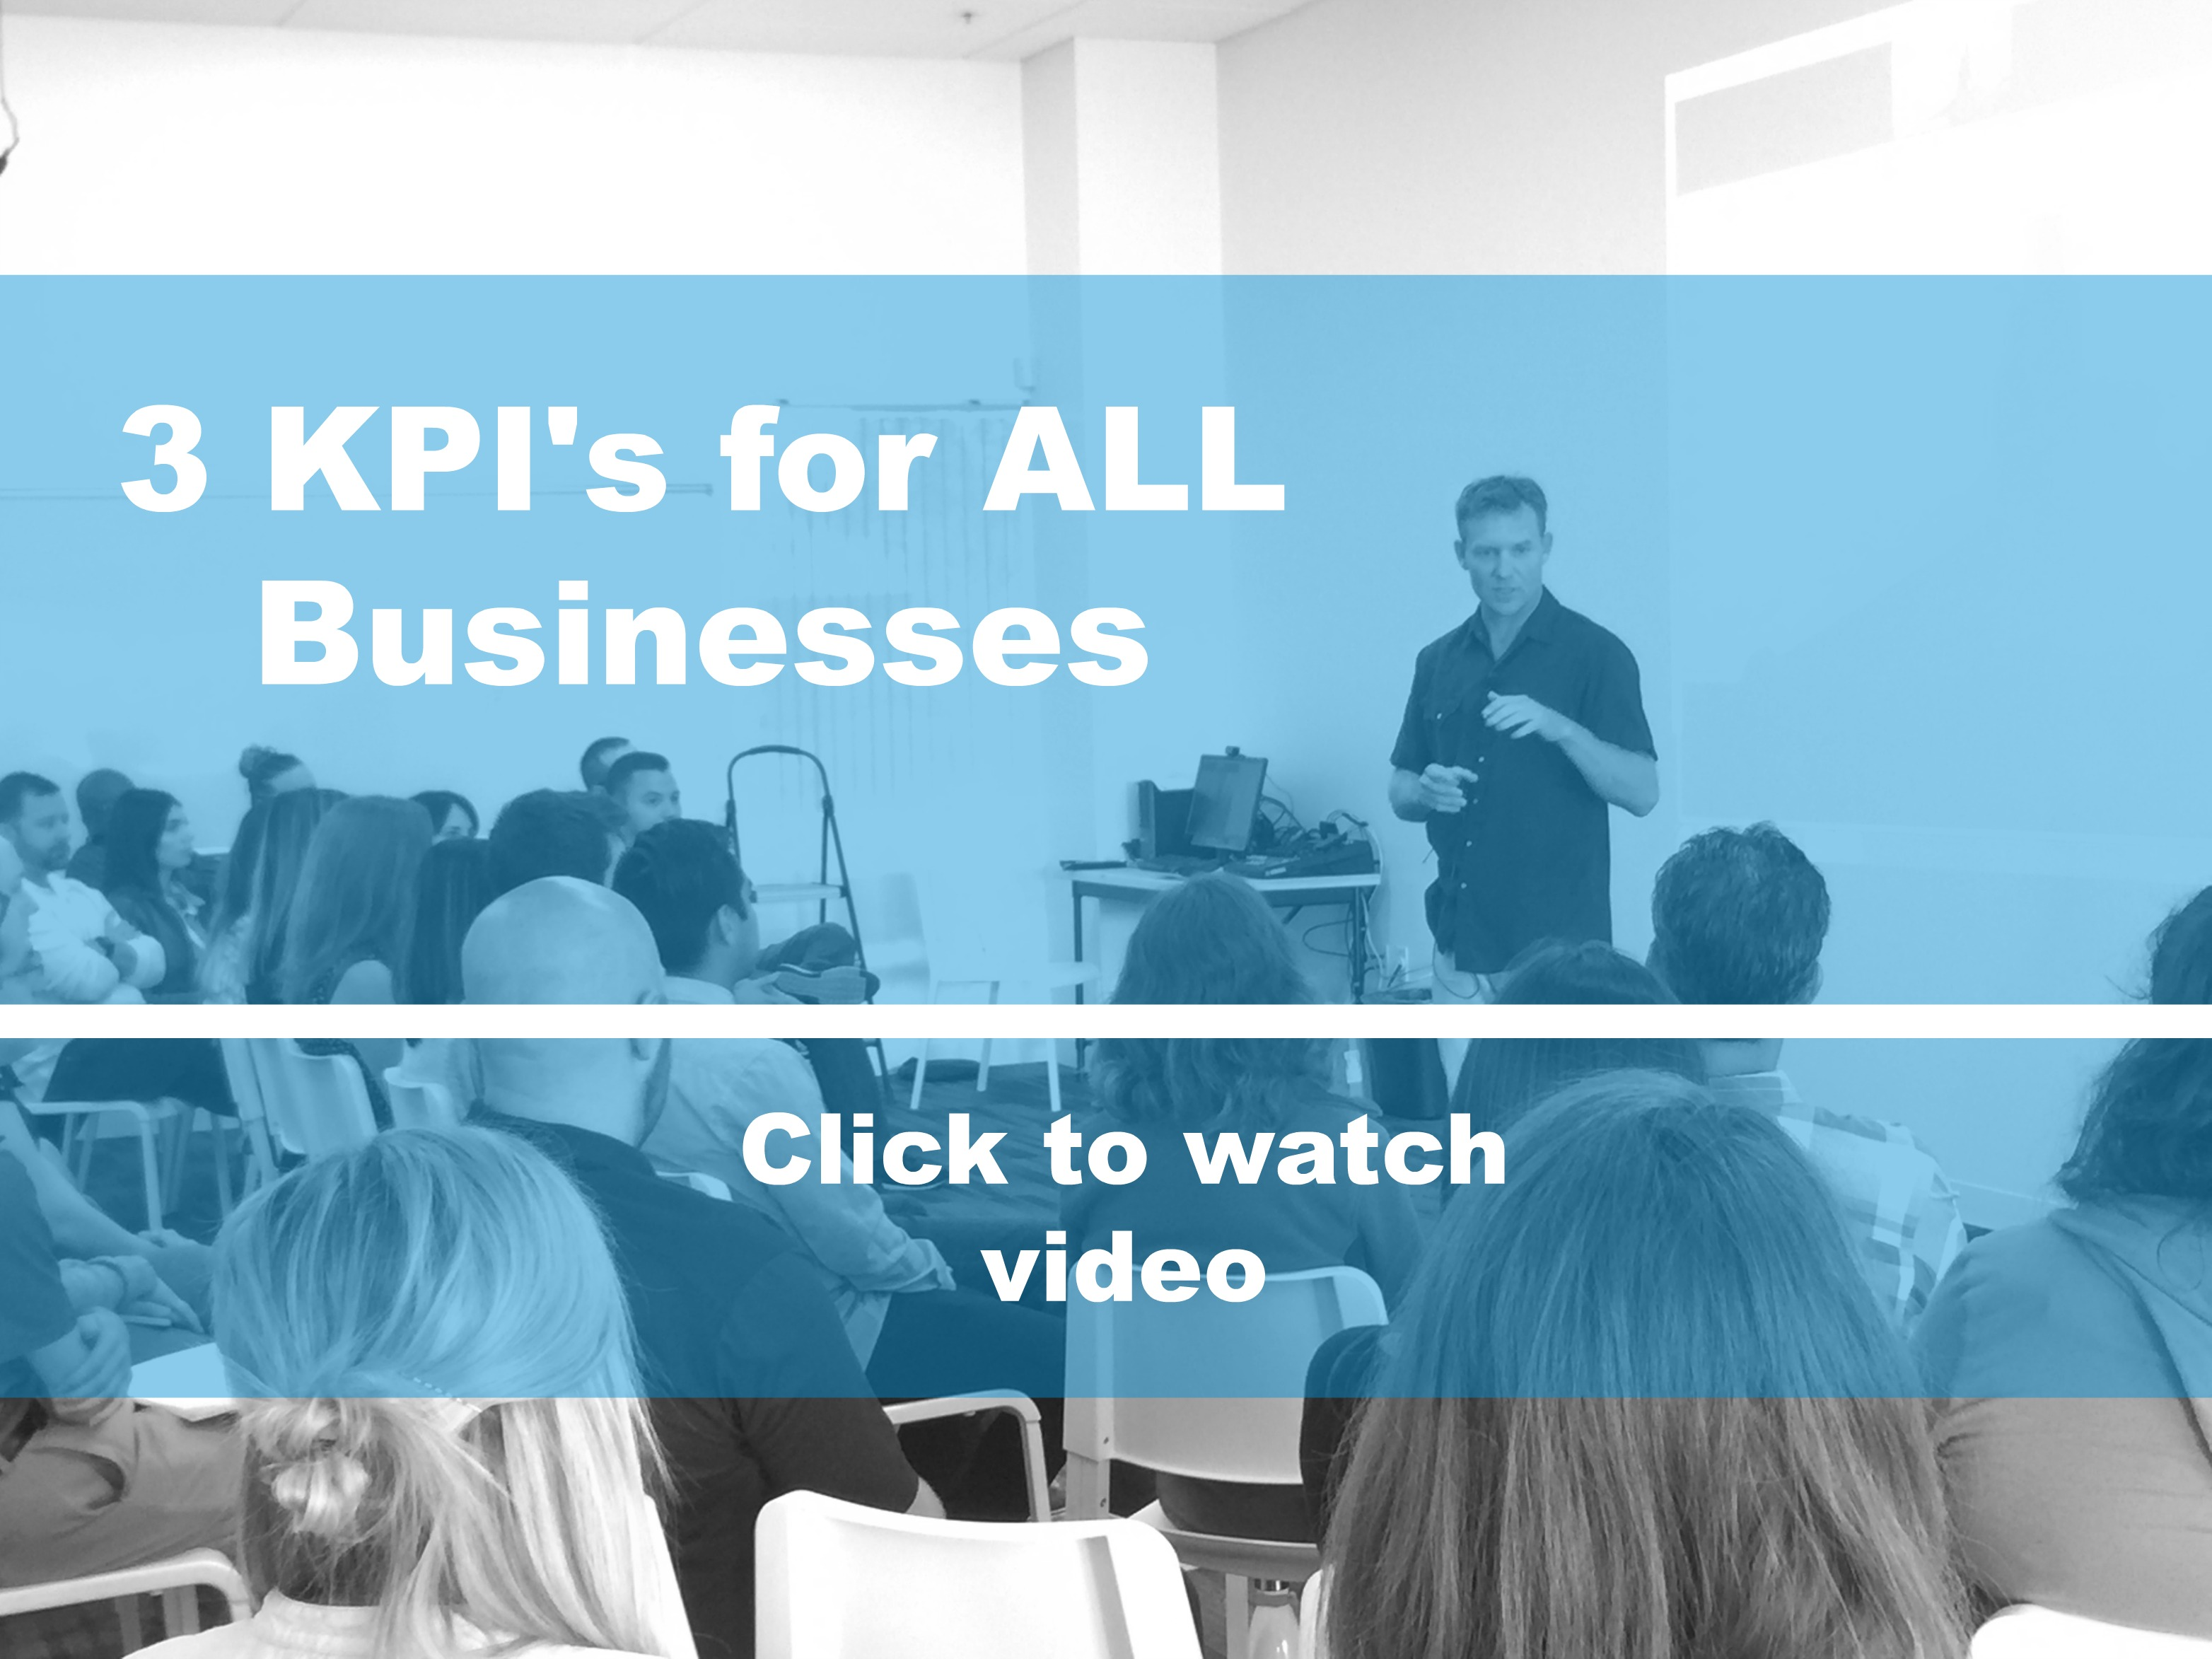 3 KPIs for ALL Businesses